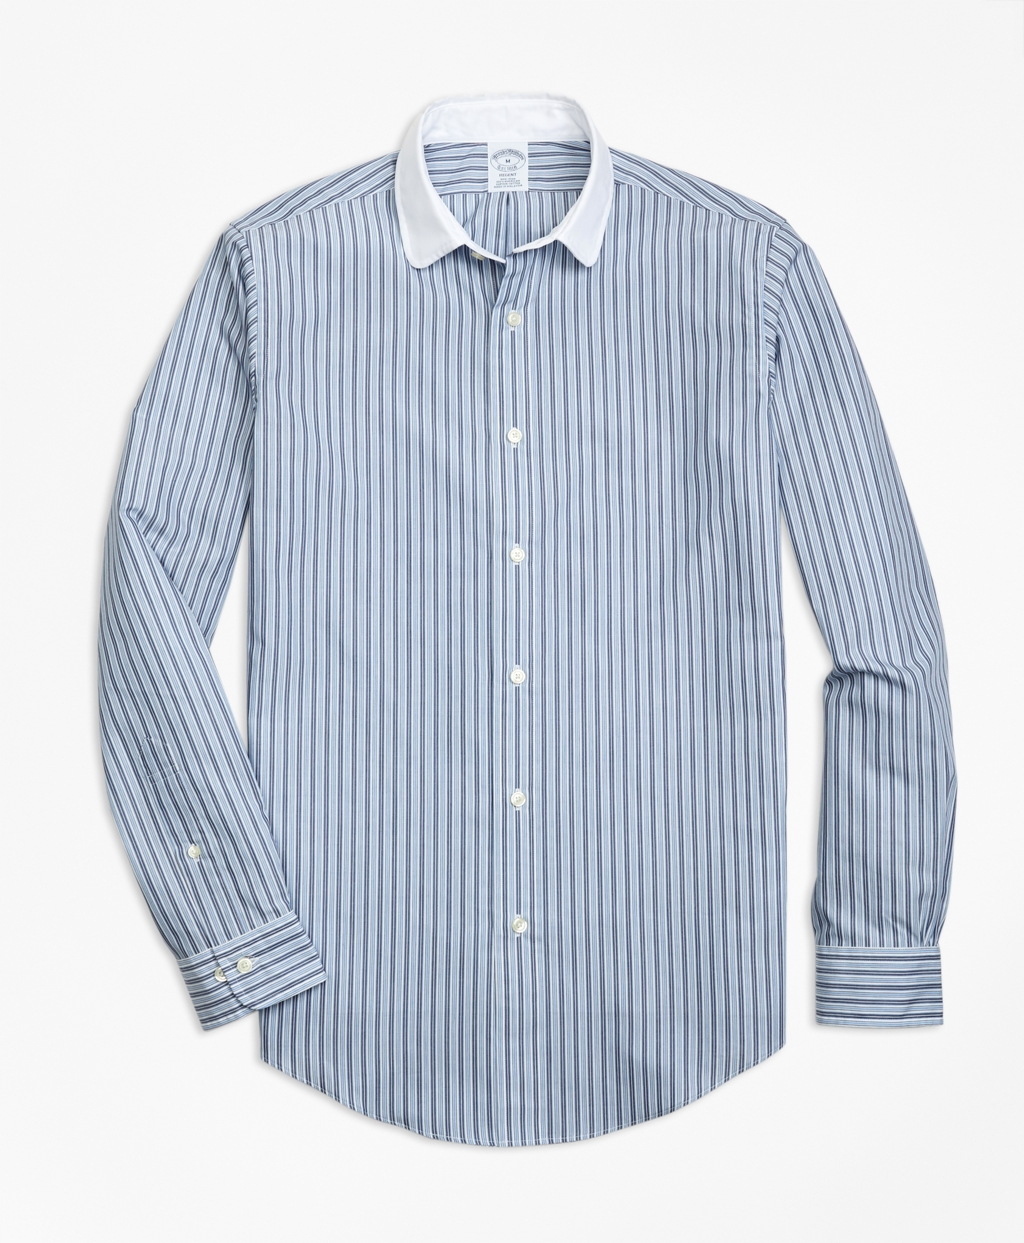 Vintage Shirts – Mens – Retro Shirts Brooks Brothers Mens Regent Fit Heathered Stripe Sport Shirt $92.00 AT vintagedancer.com